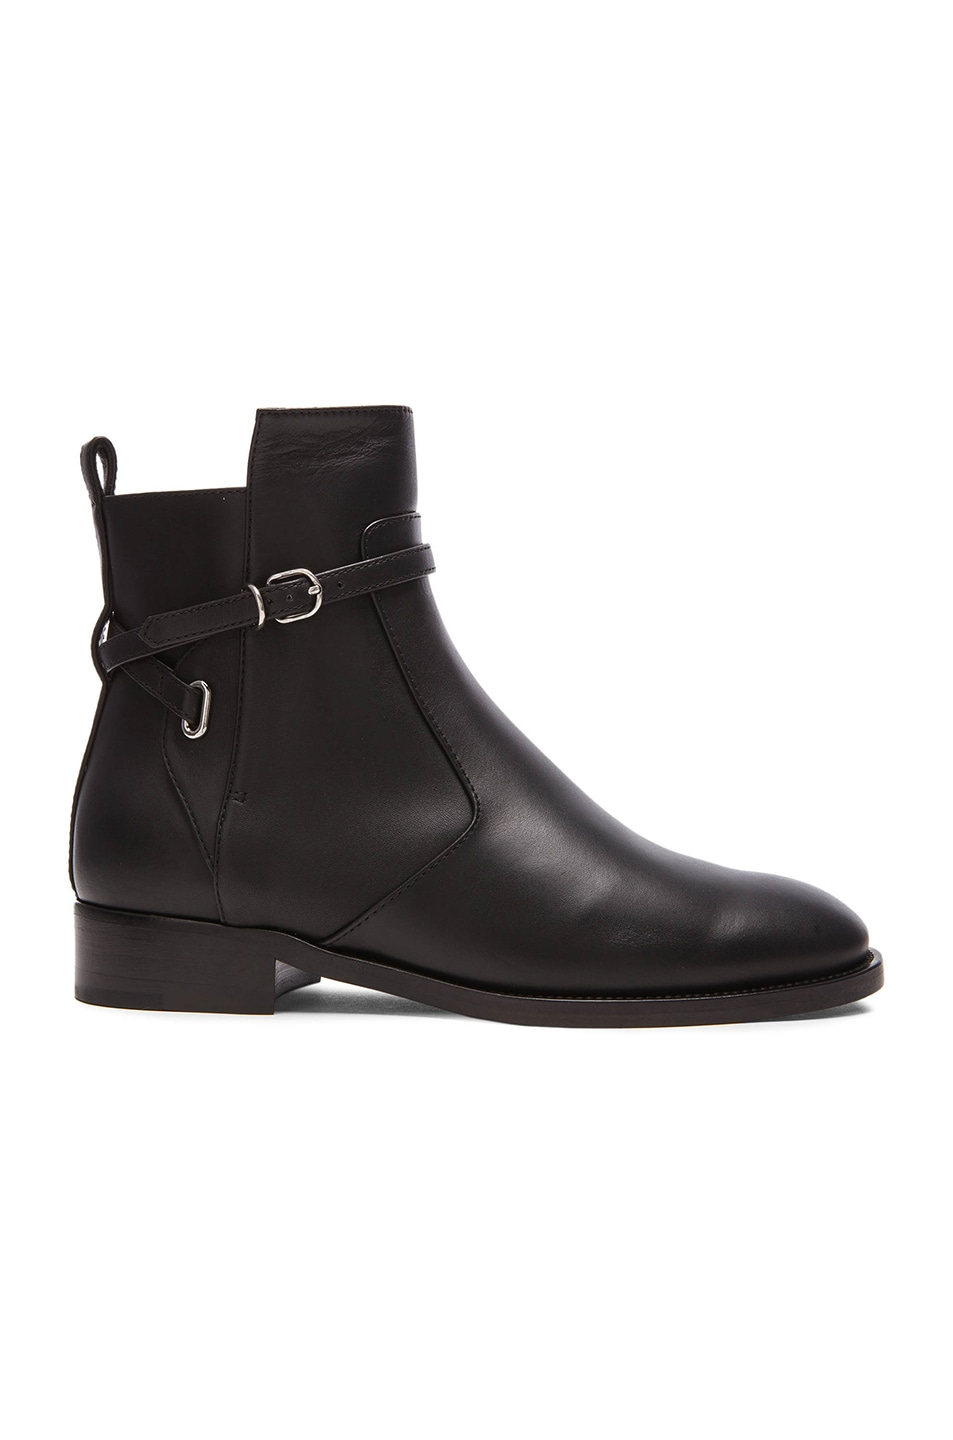 Image 1 of Balenciaga Calfskin Leather Boots in Black